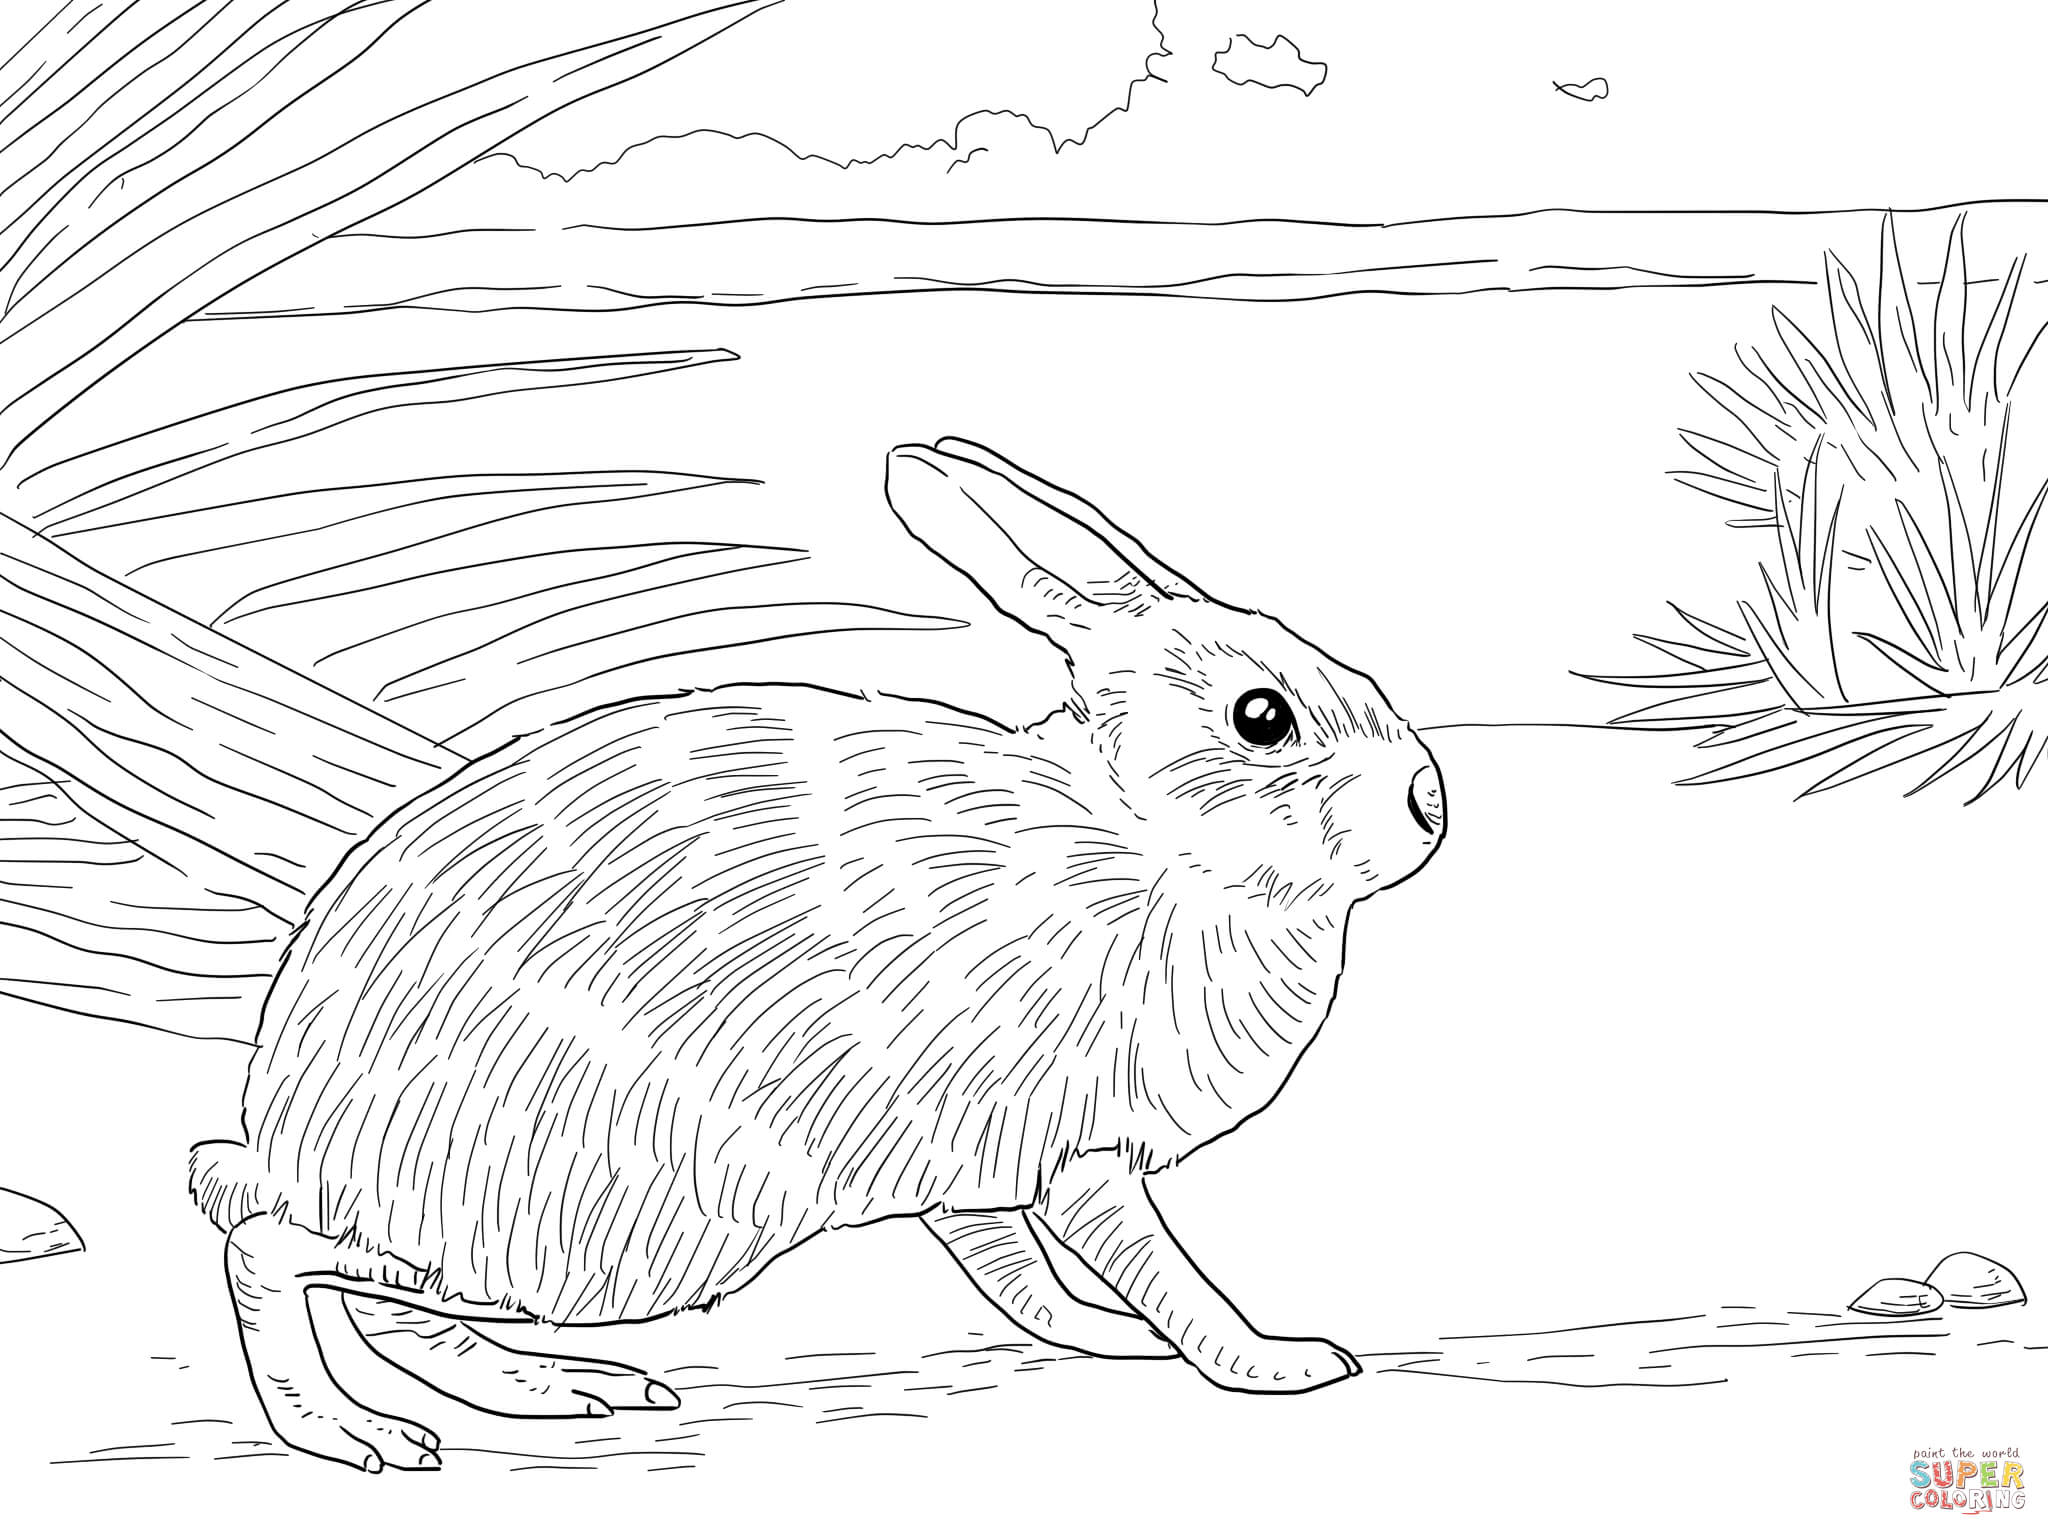 Marsh Rabbit Coloring Page